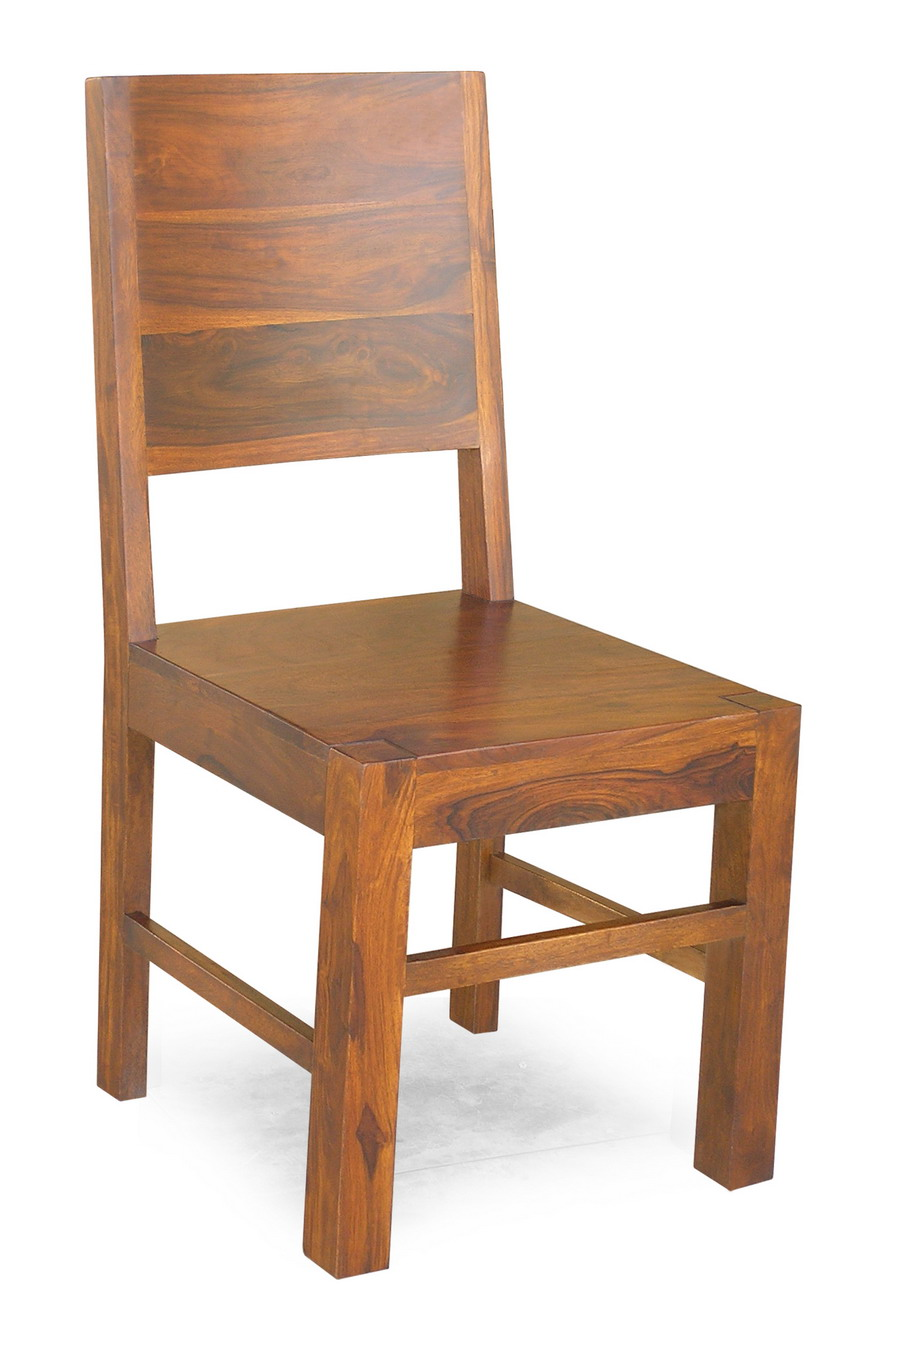 Wooden Dining Chairs Indian Wood Chairs For Dining Table